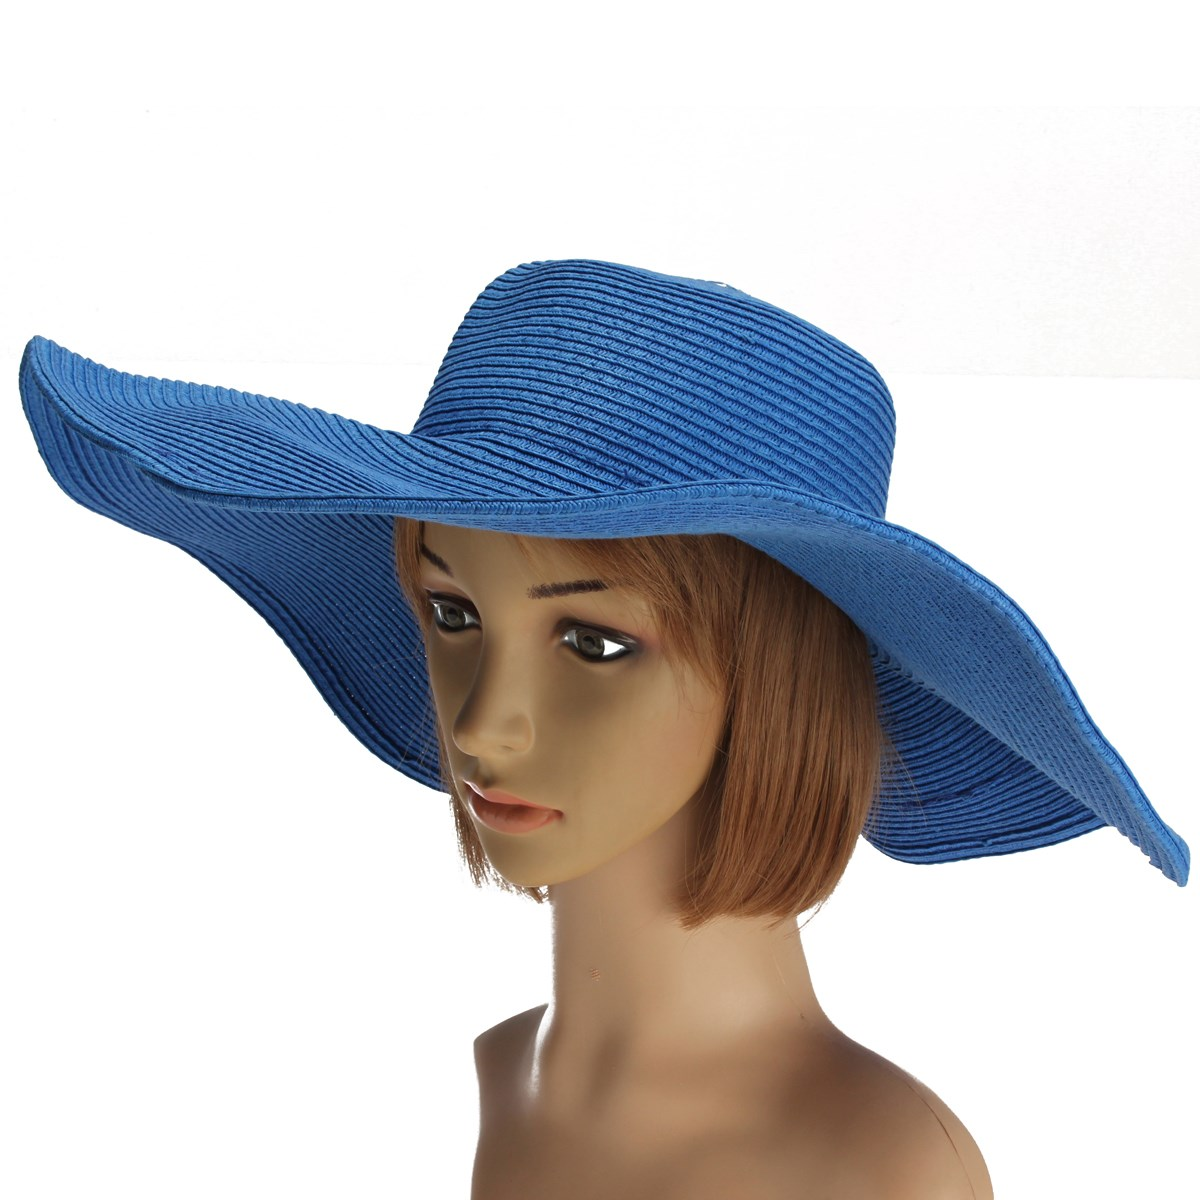 how to change the color of a straw hat